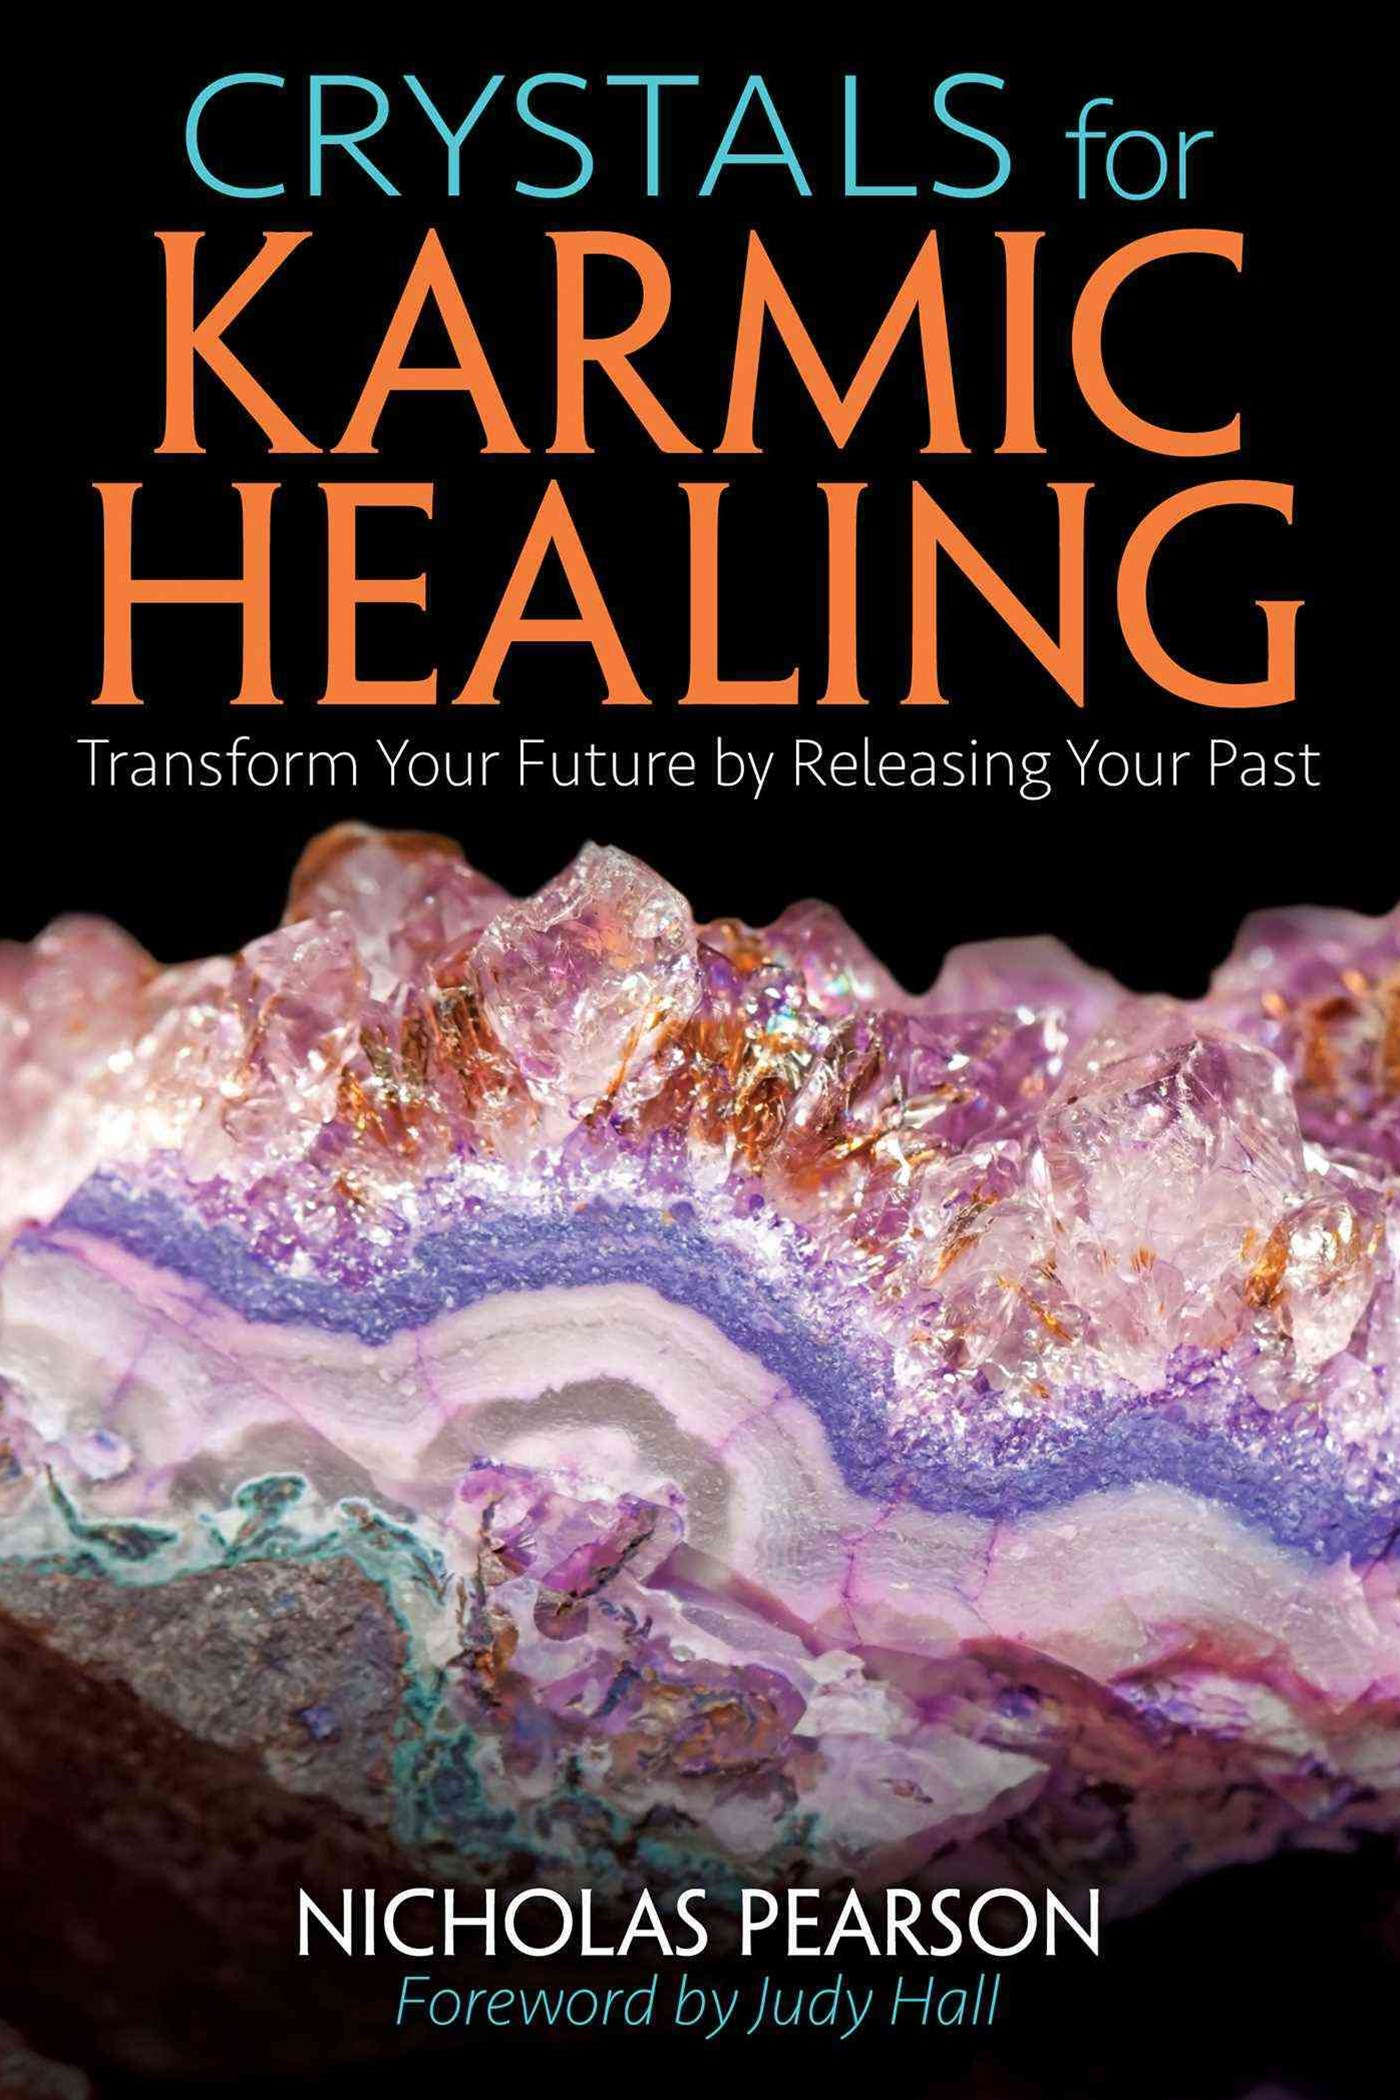 Crystals for Karmic Healing